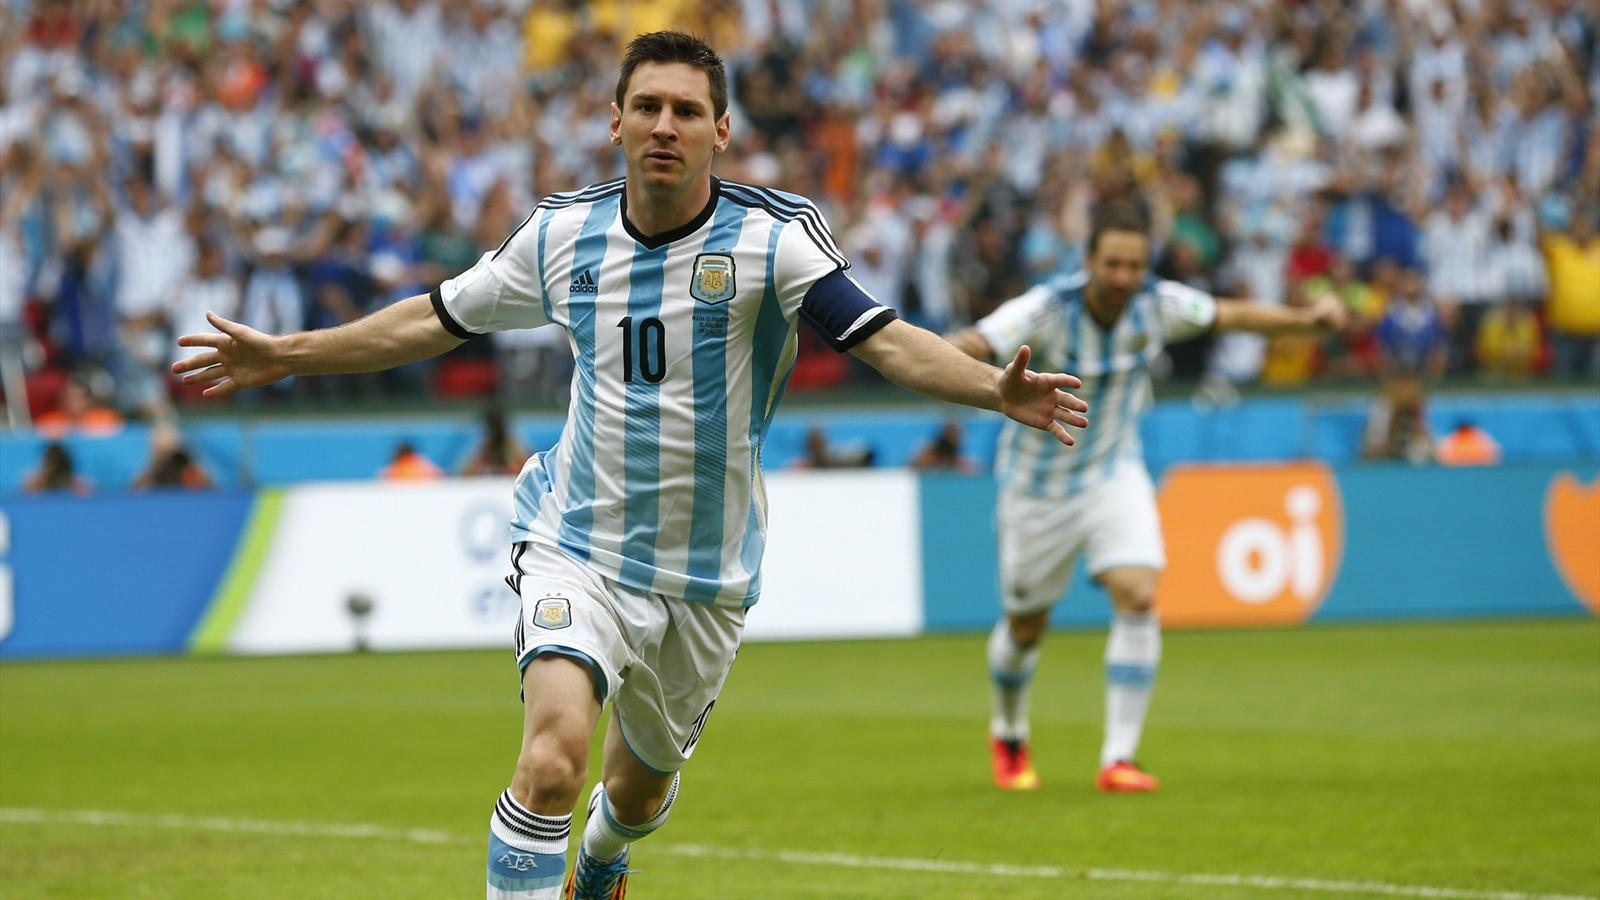 Lional Messi Wallpapers 1024x576 (900.25 KB)